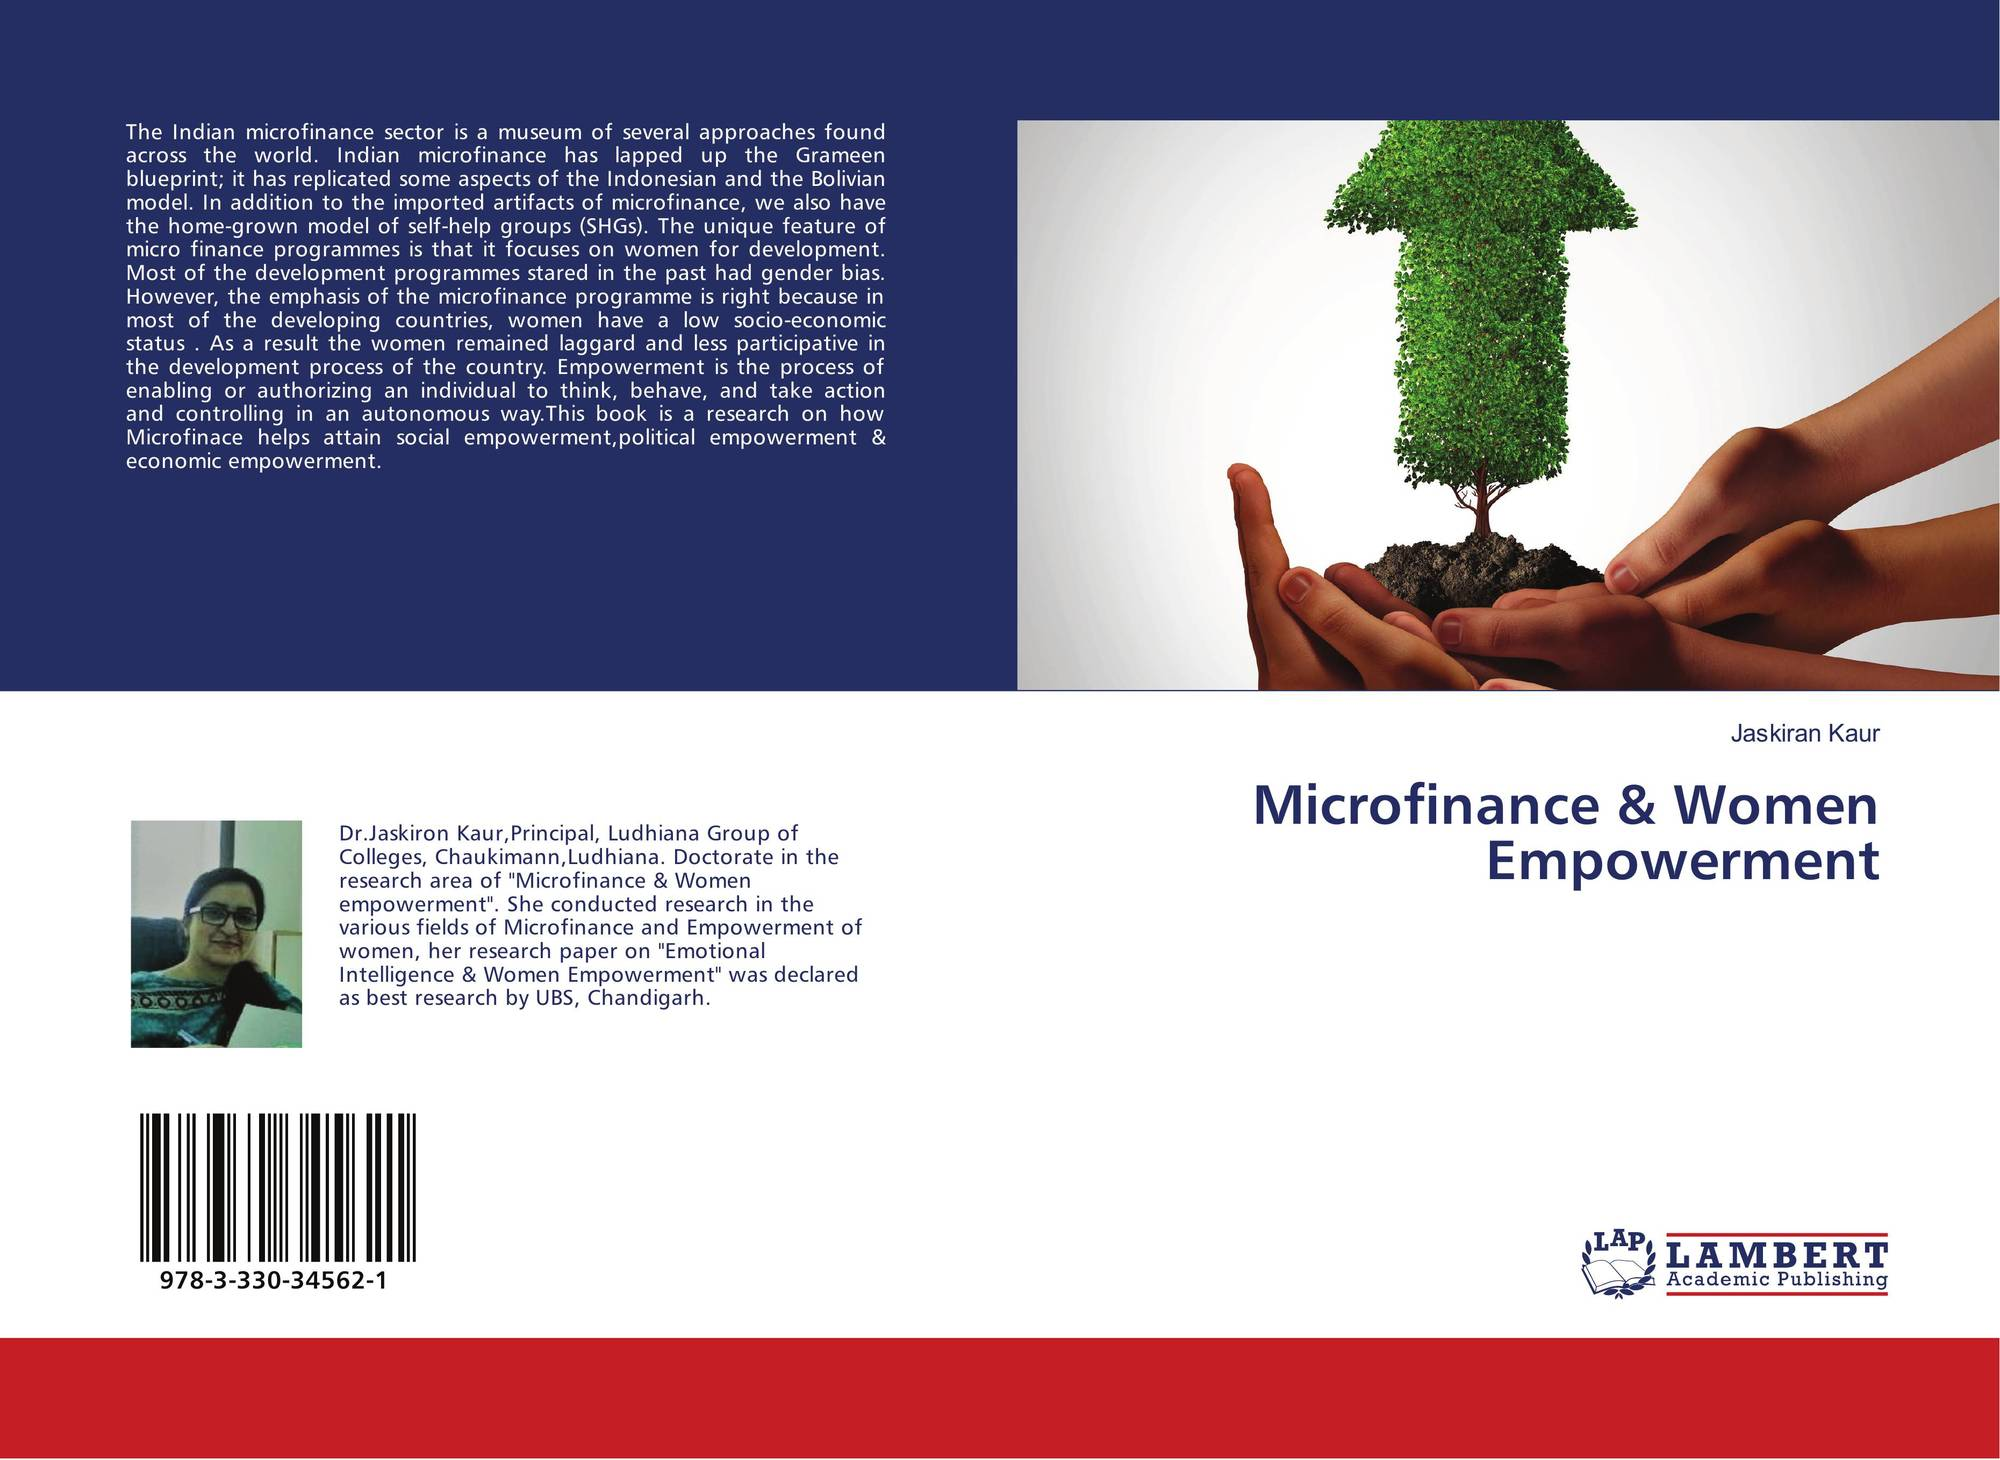 a review of the micro finance institutions and womens empowerment Women's empowerment is the transformation of the structures of subordination, including changes in the law, civil order, property and inheritance rights, and control over women's bodies and labour, and the social and legal institutions that endorse male control.